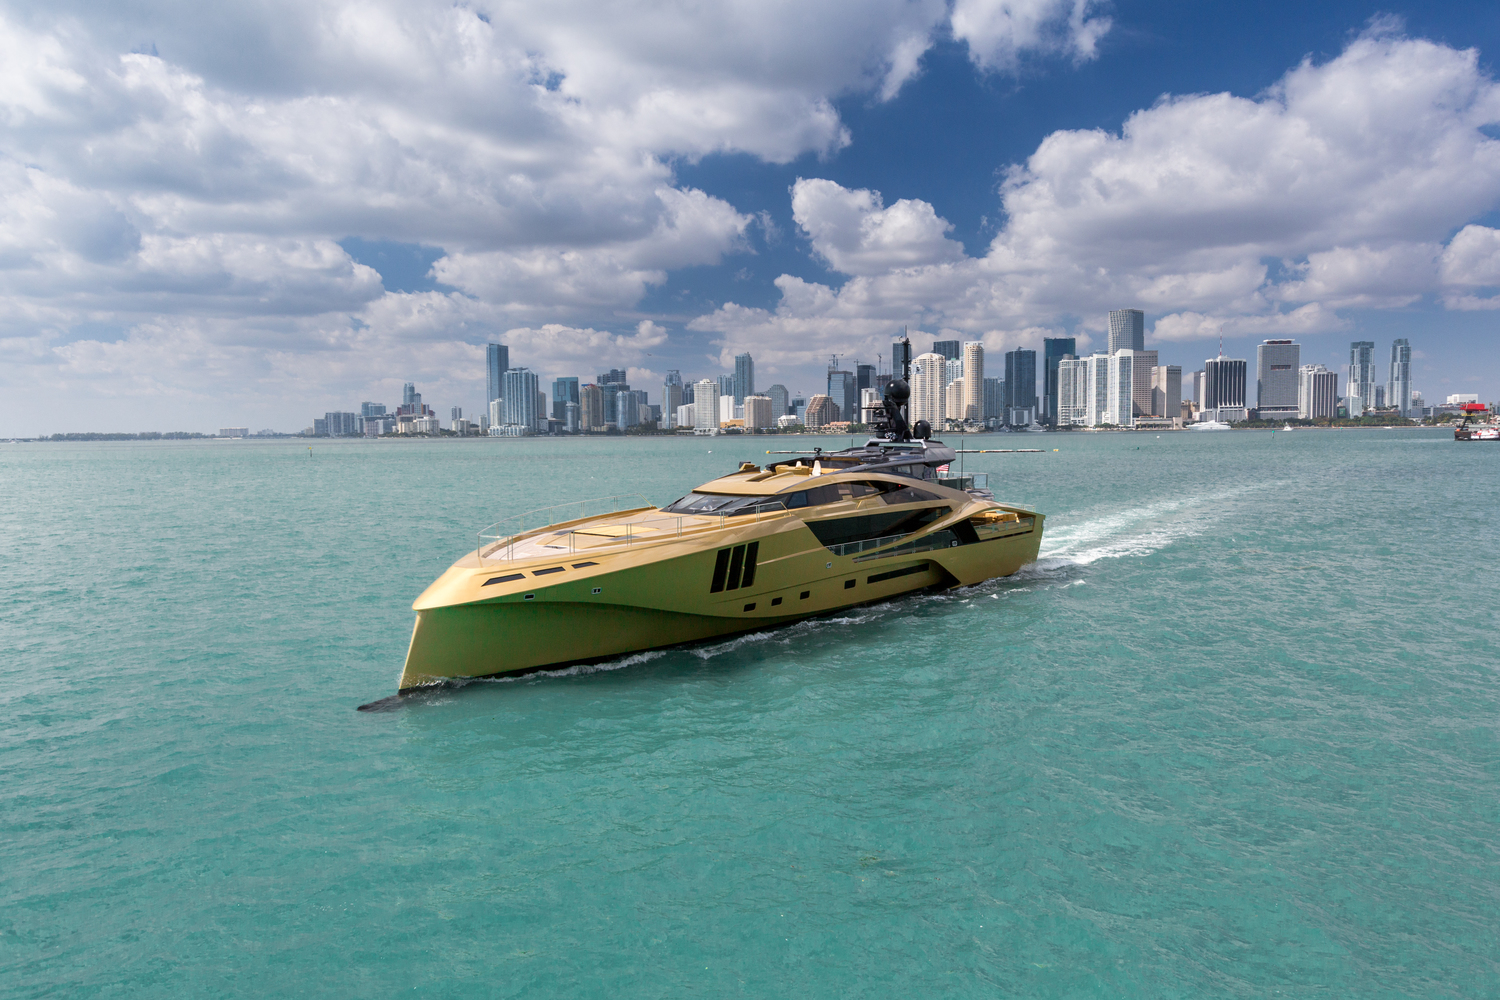 This Golden Yacht is the Most Beautiful Boat You'll Ever See!